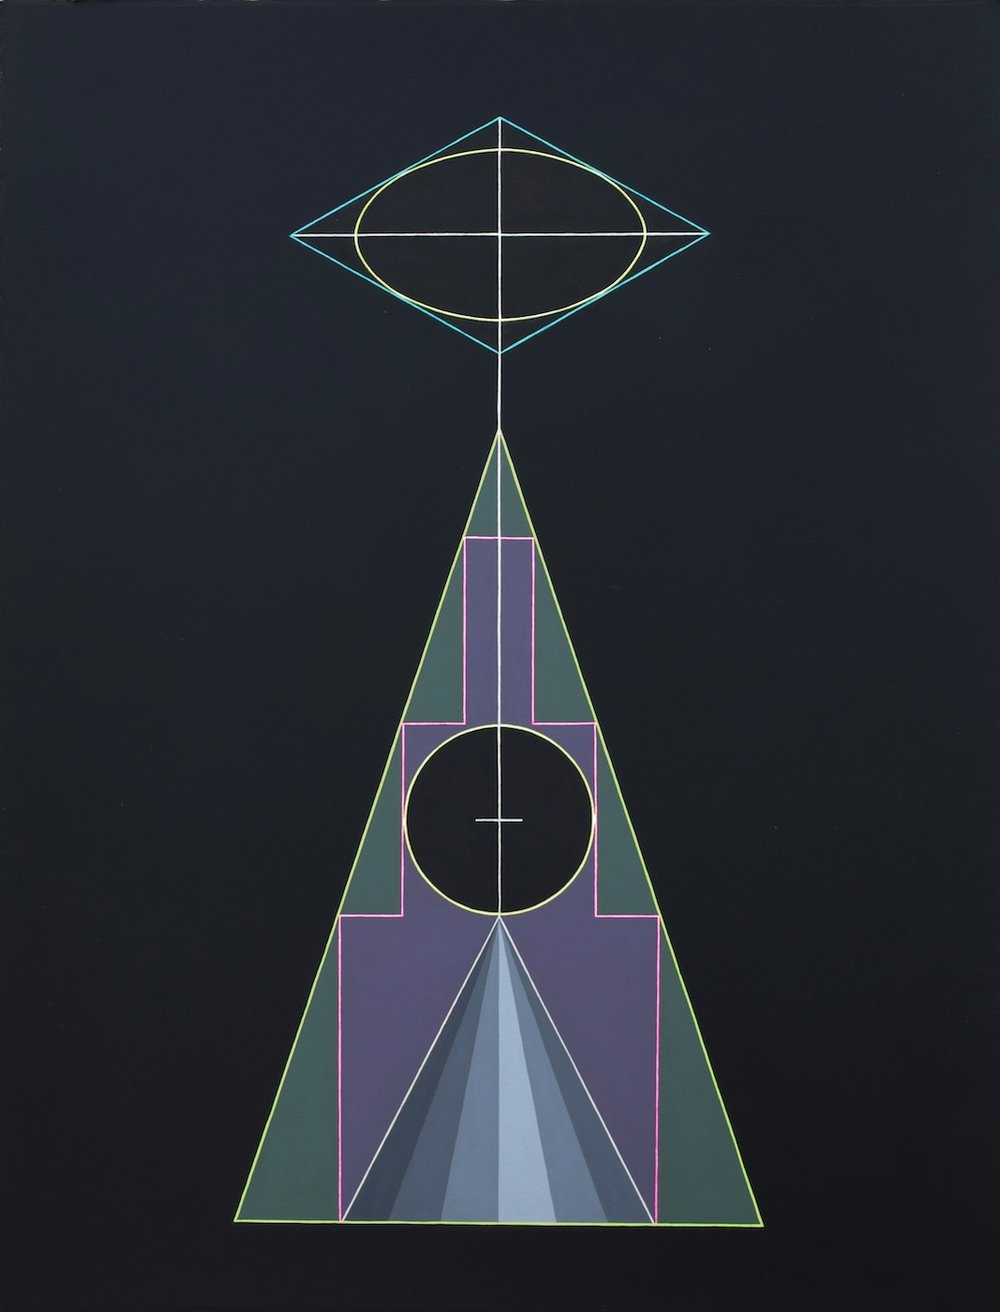 Ascent 2012 Acrylics and marker on paper 56.5 x 43.2 cm